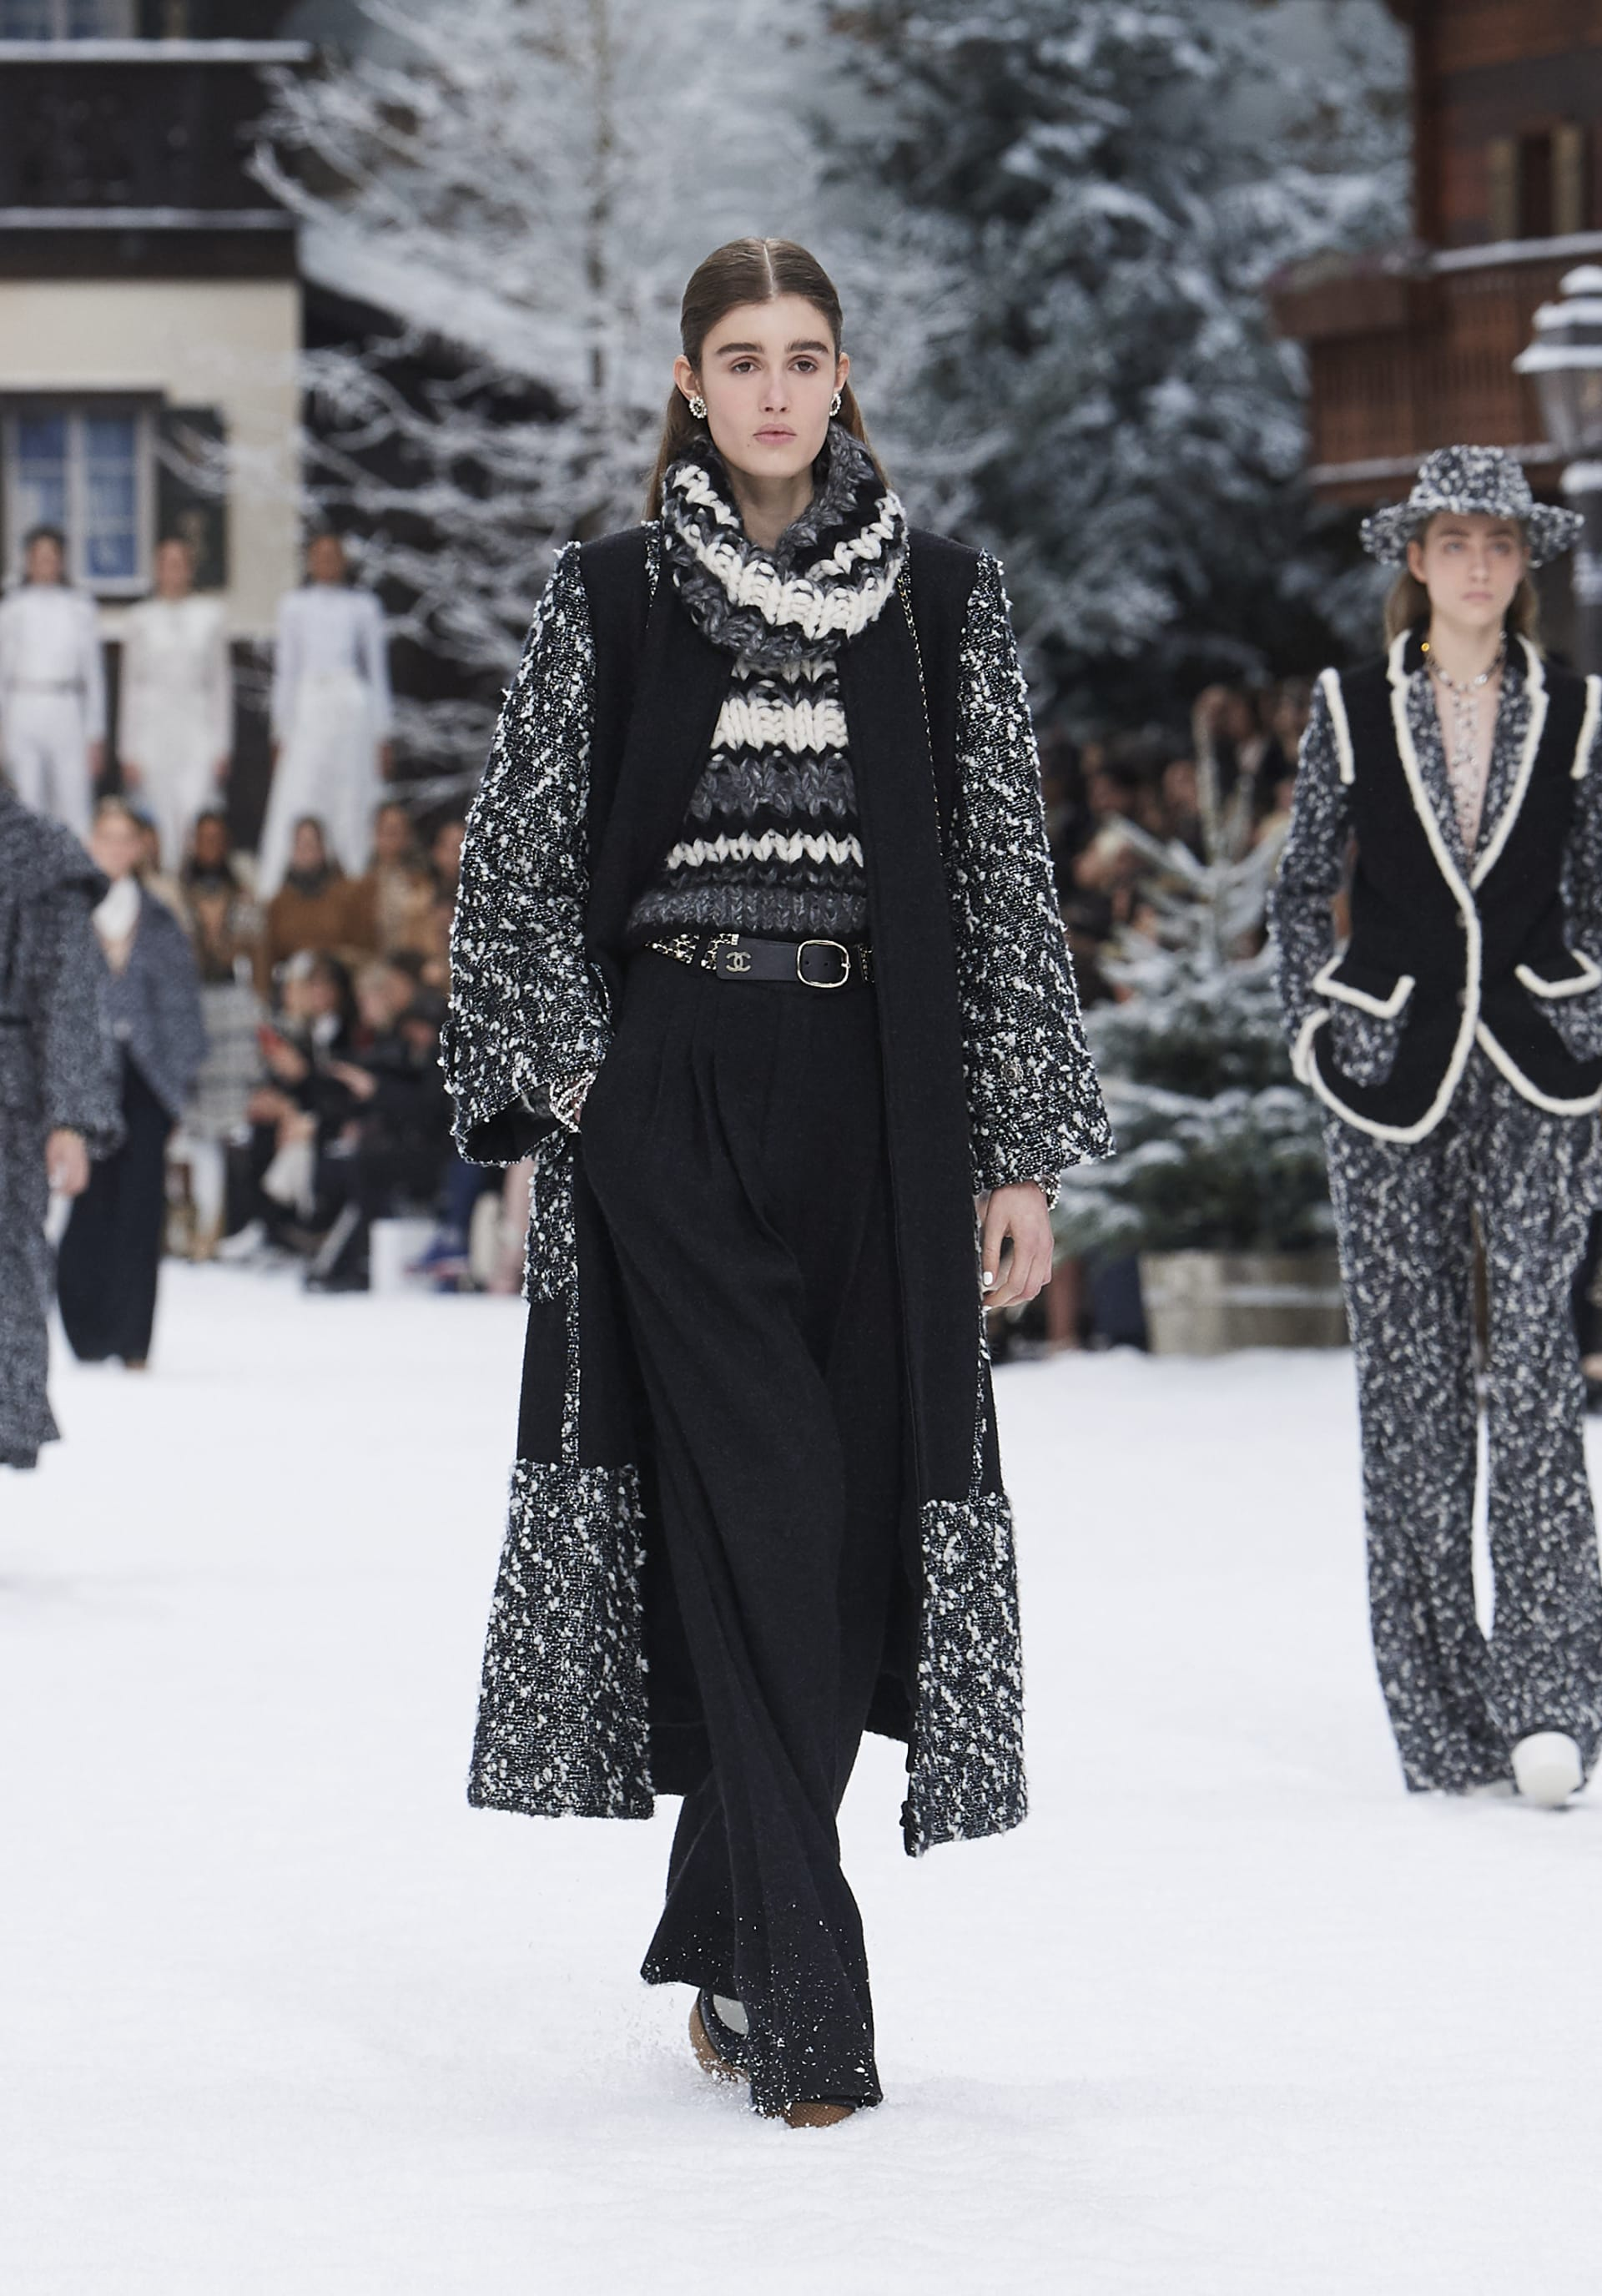 View 1 - Look 8 - Fall-Winter 2019/20